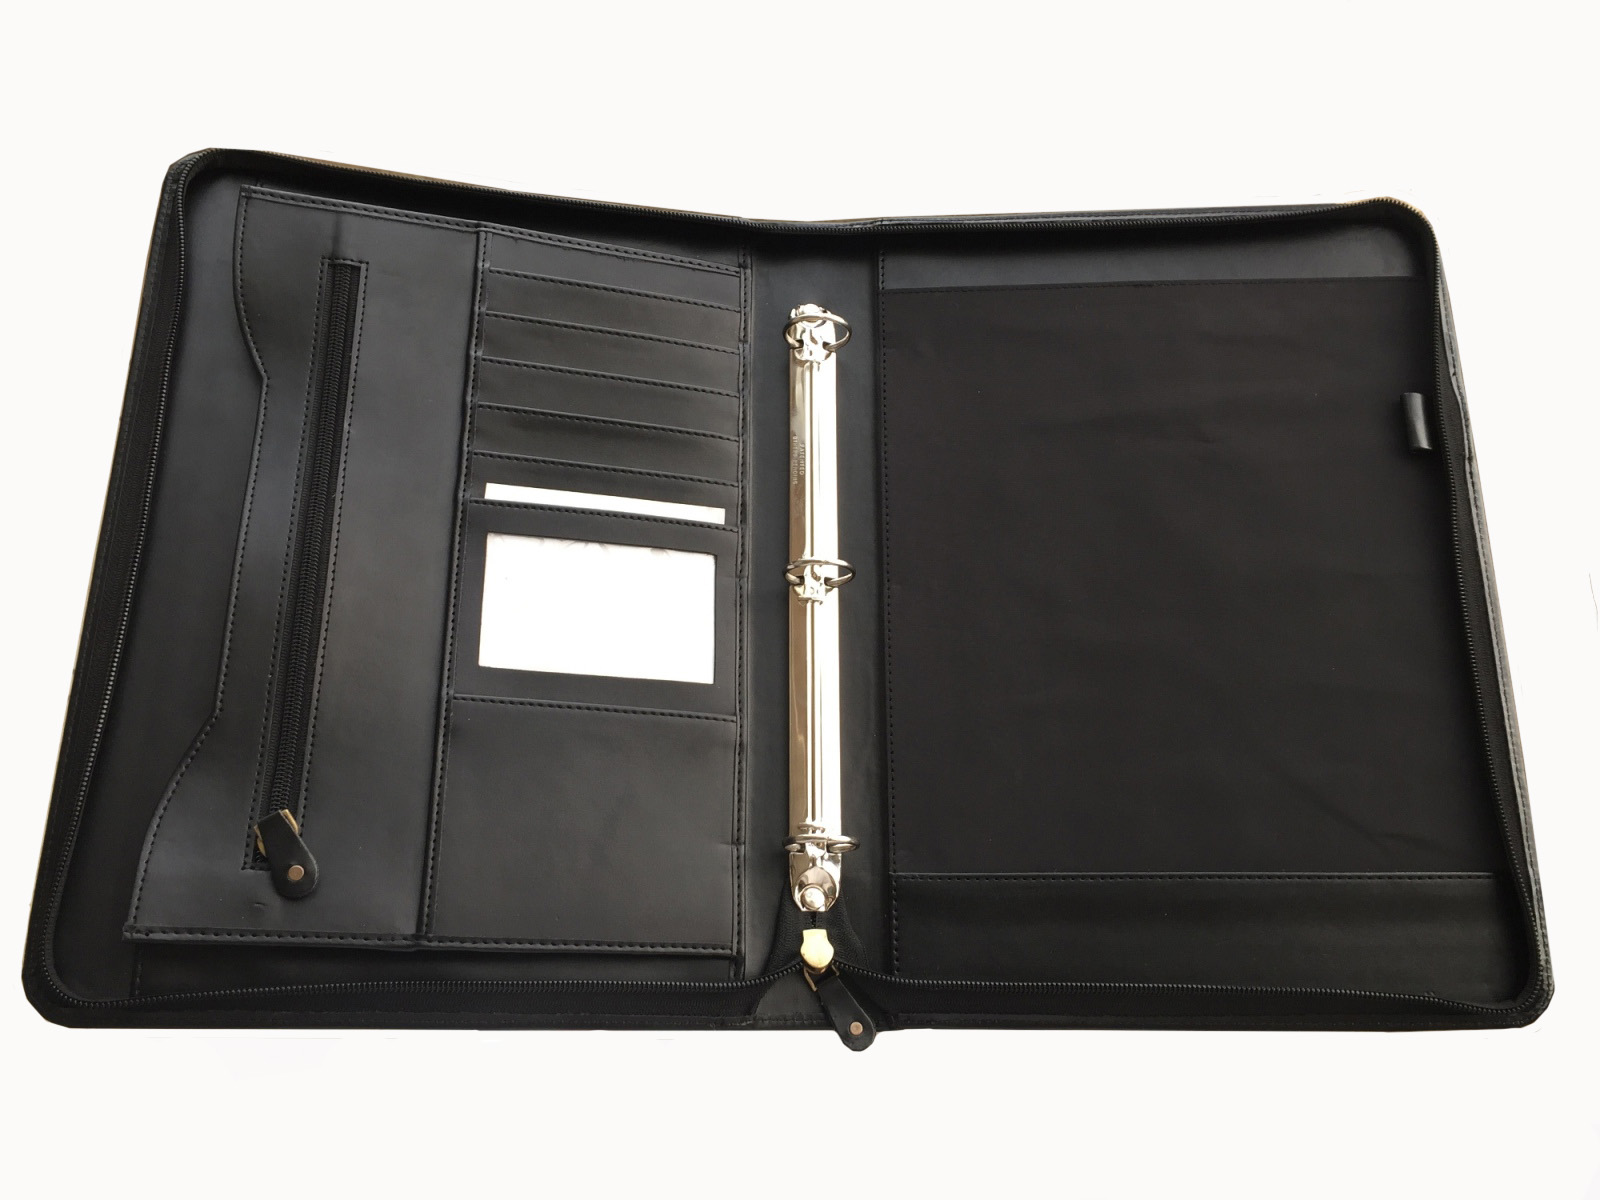 A4 zip closure leather ring binder cover / Leather portfolio and Organizer/Ring binders